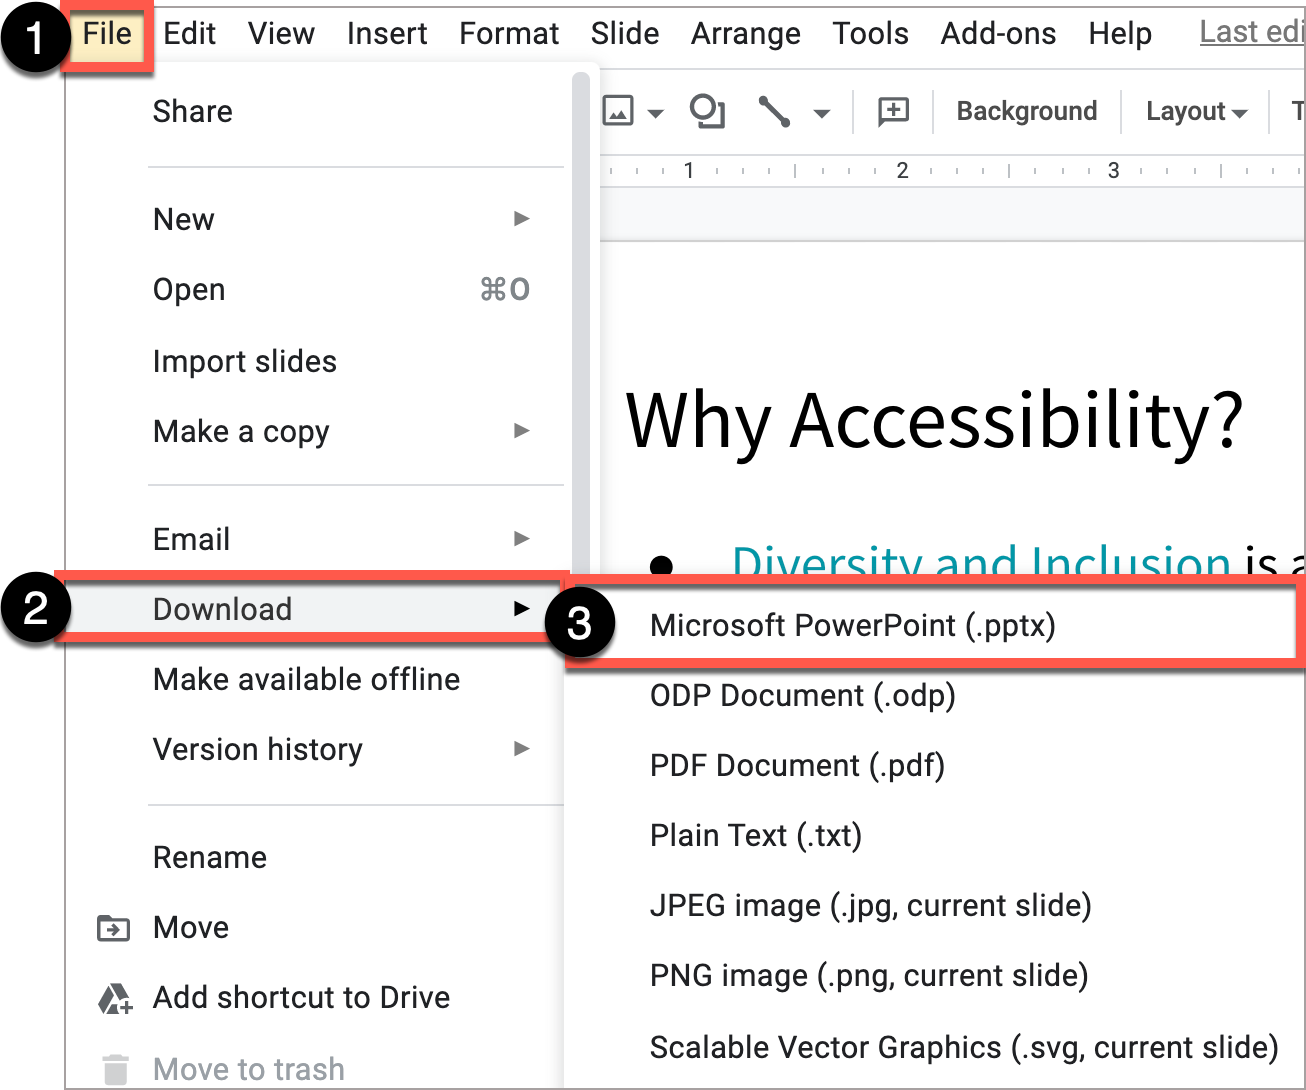 To download in a different format in Google Slides, select File, then Download.